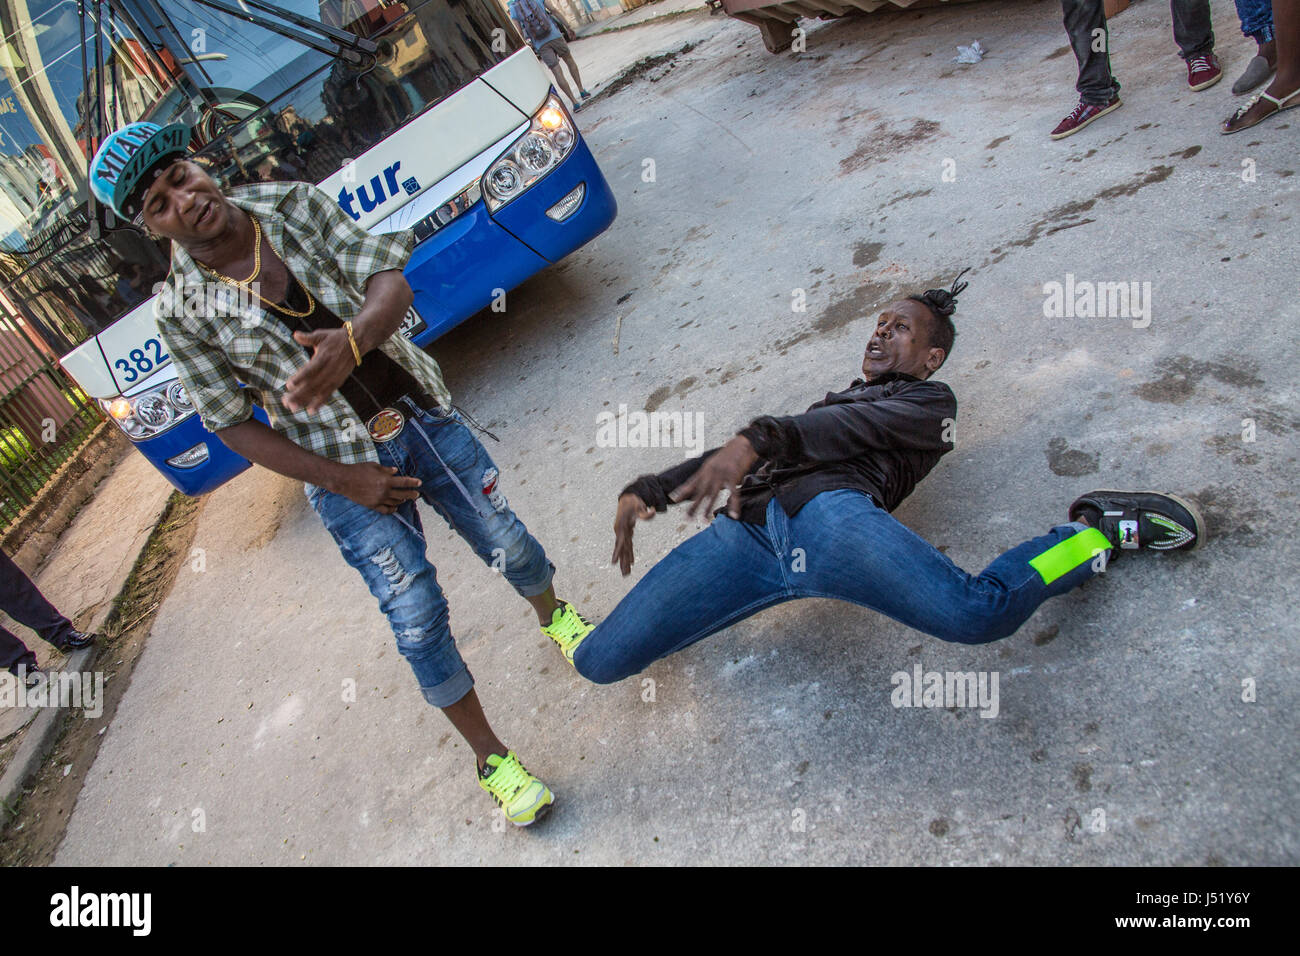 Cuban rappers performing on the street - Stock Image